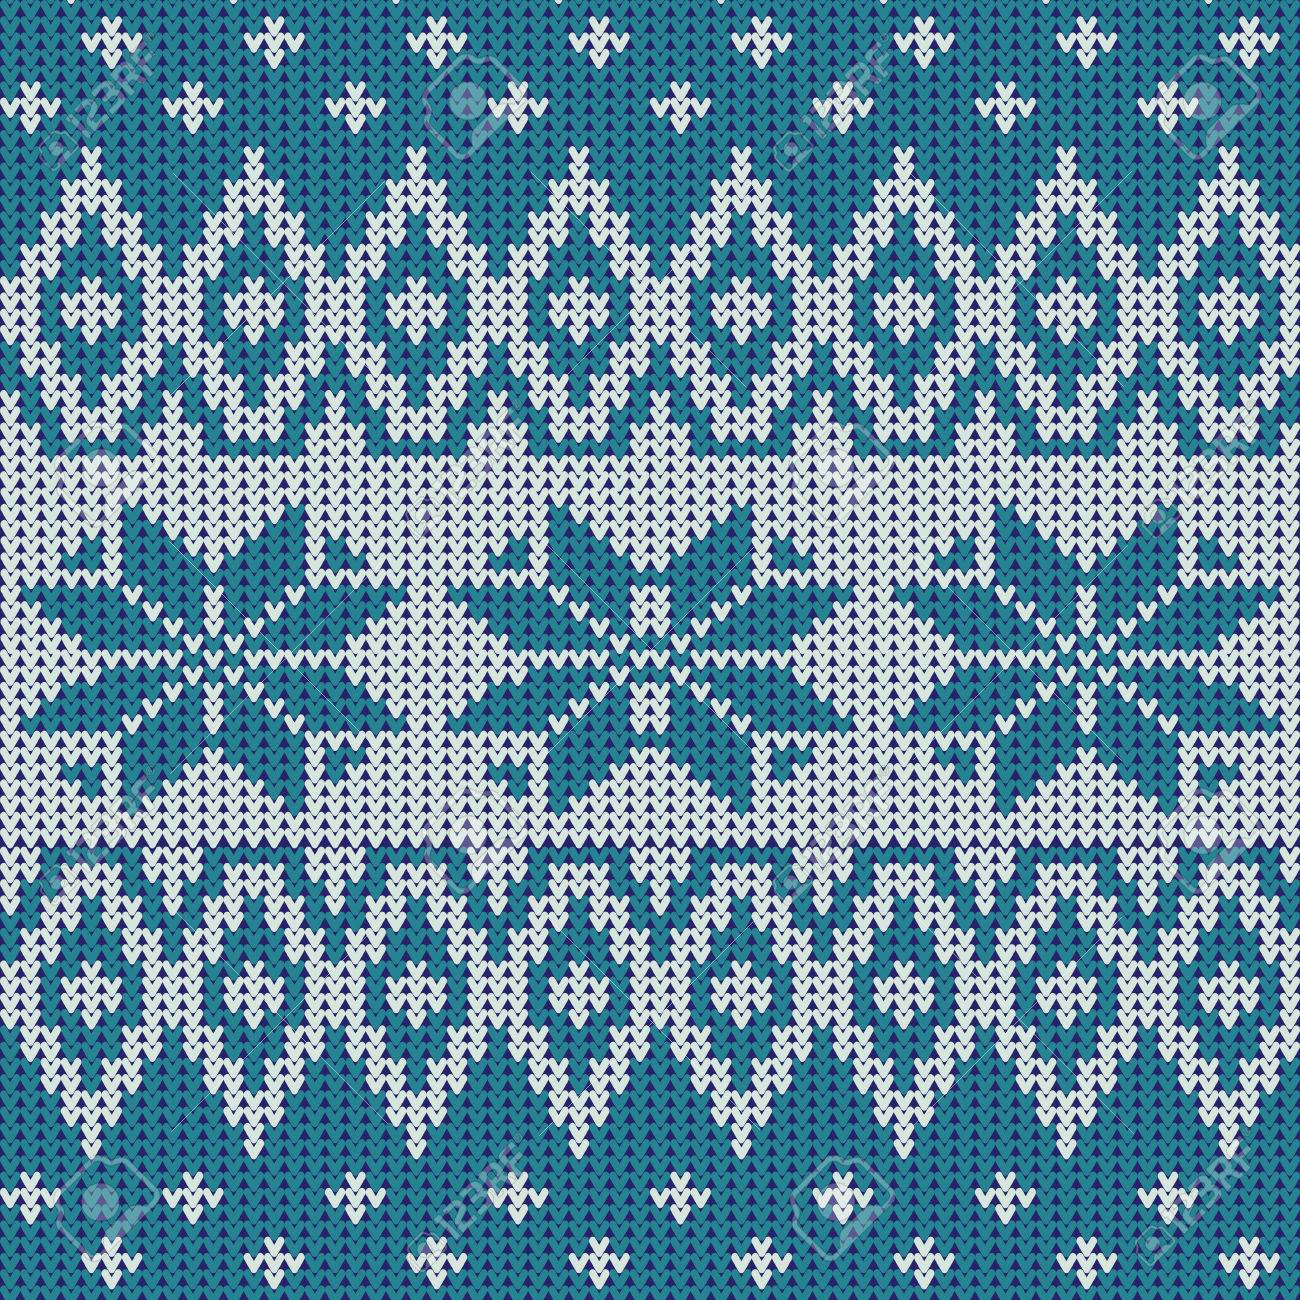 Nordic Knitted Pattern With Snowflakes Royalty Free Cliparts ...